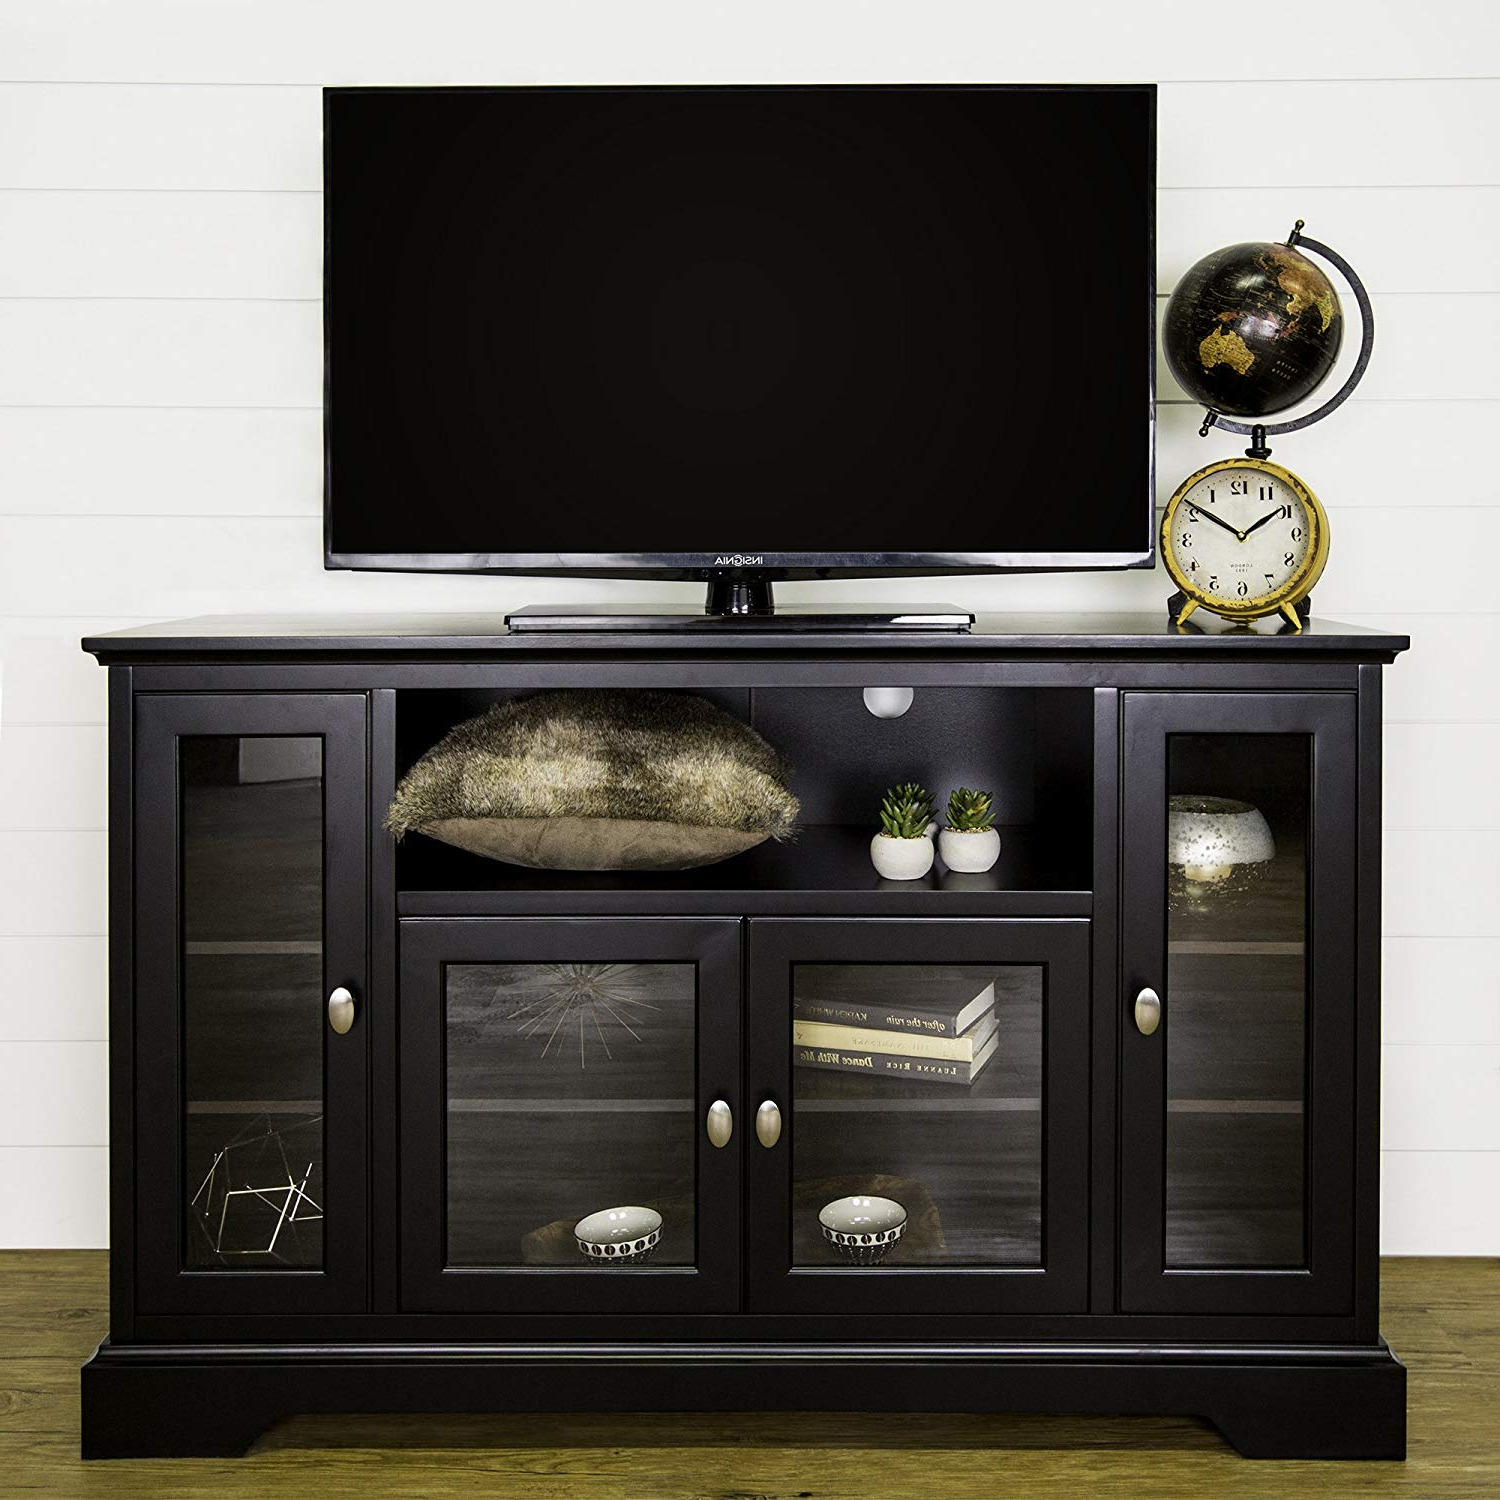 "Black Wood Corner Tv Stands Intended For Well Known Amazon: We Furniture 52"" Wood Highboy Style Tall Tv Stand (View 5 of 20)"